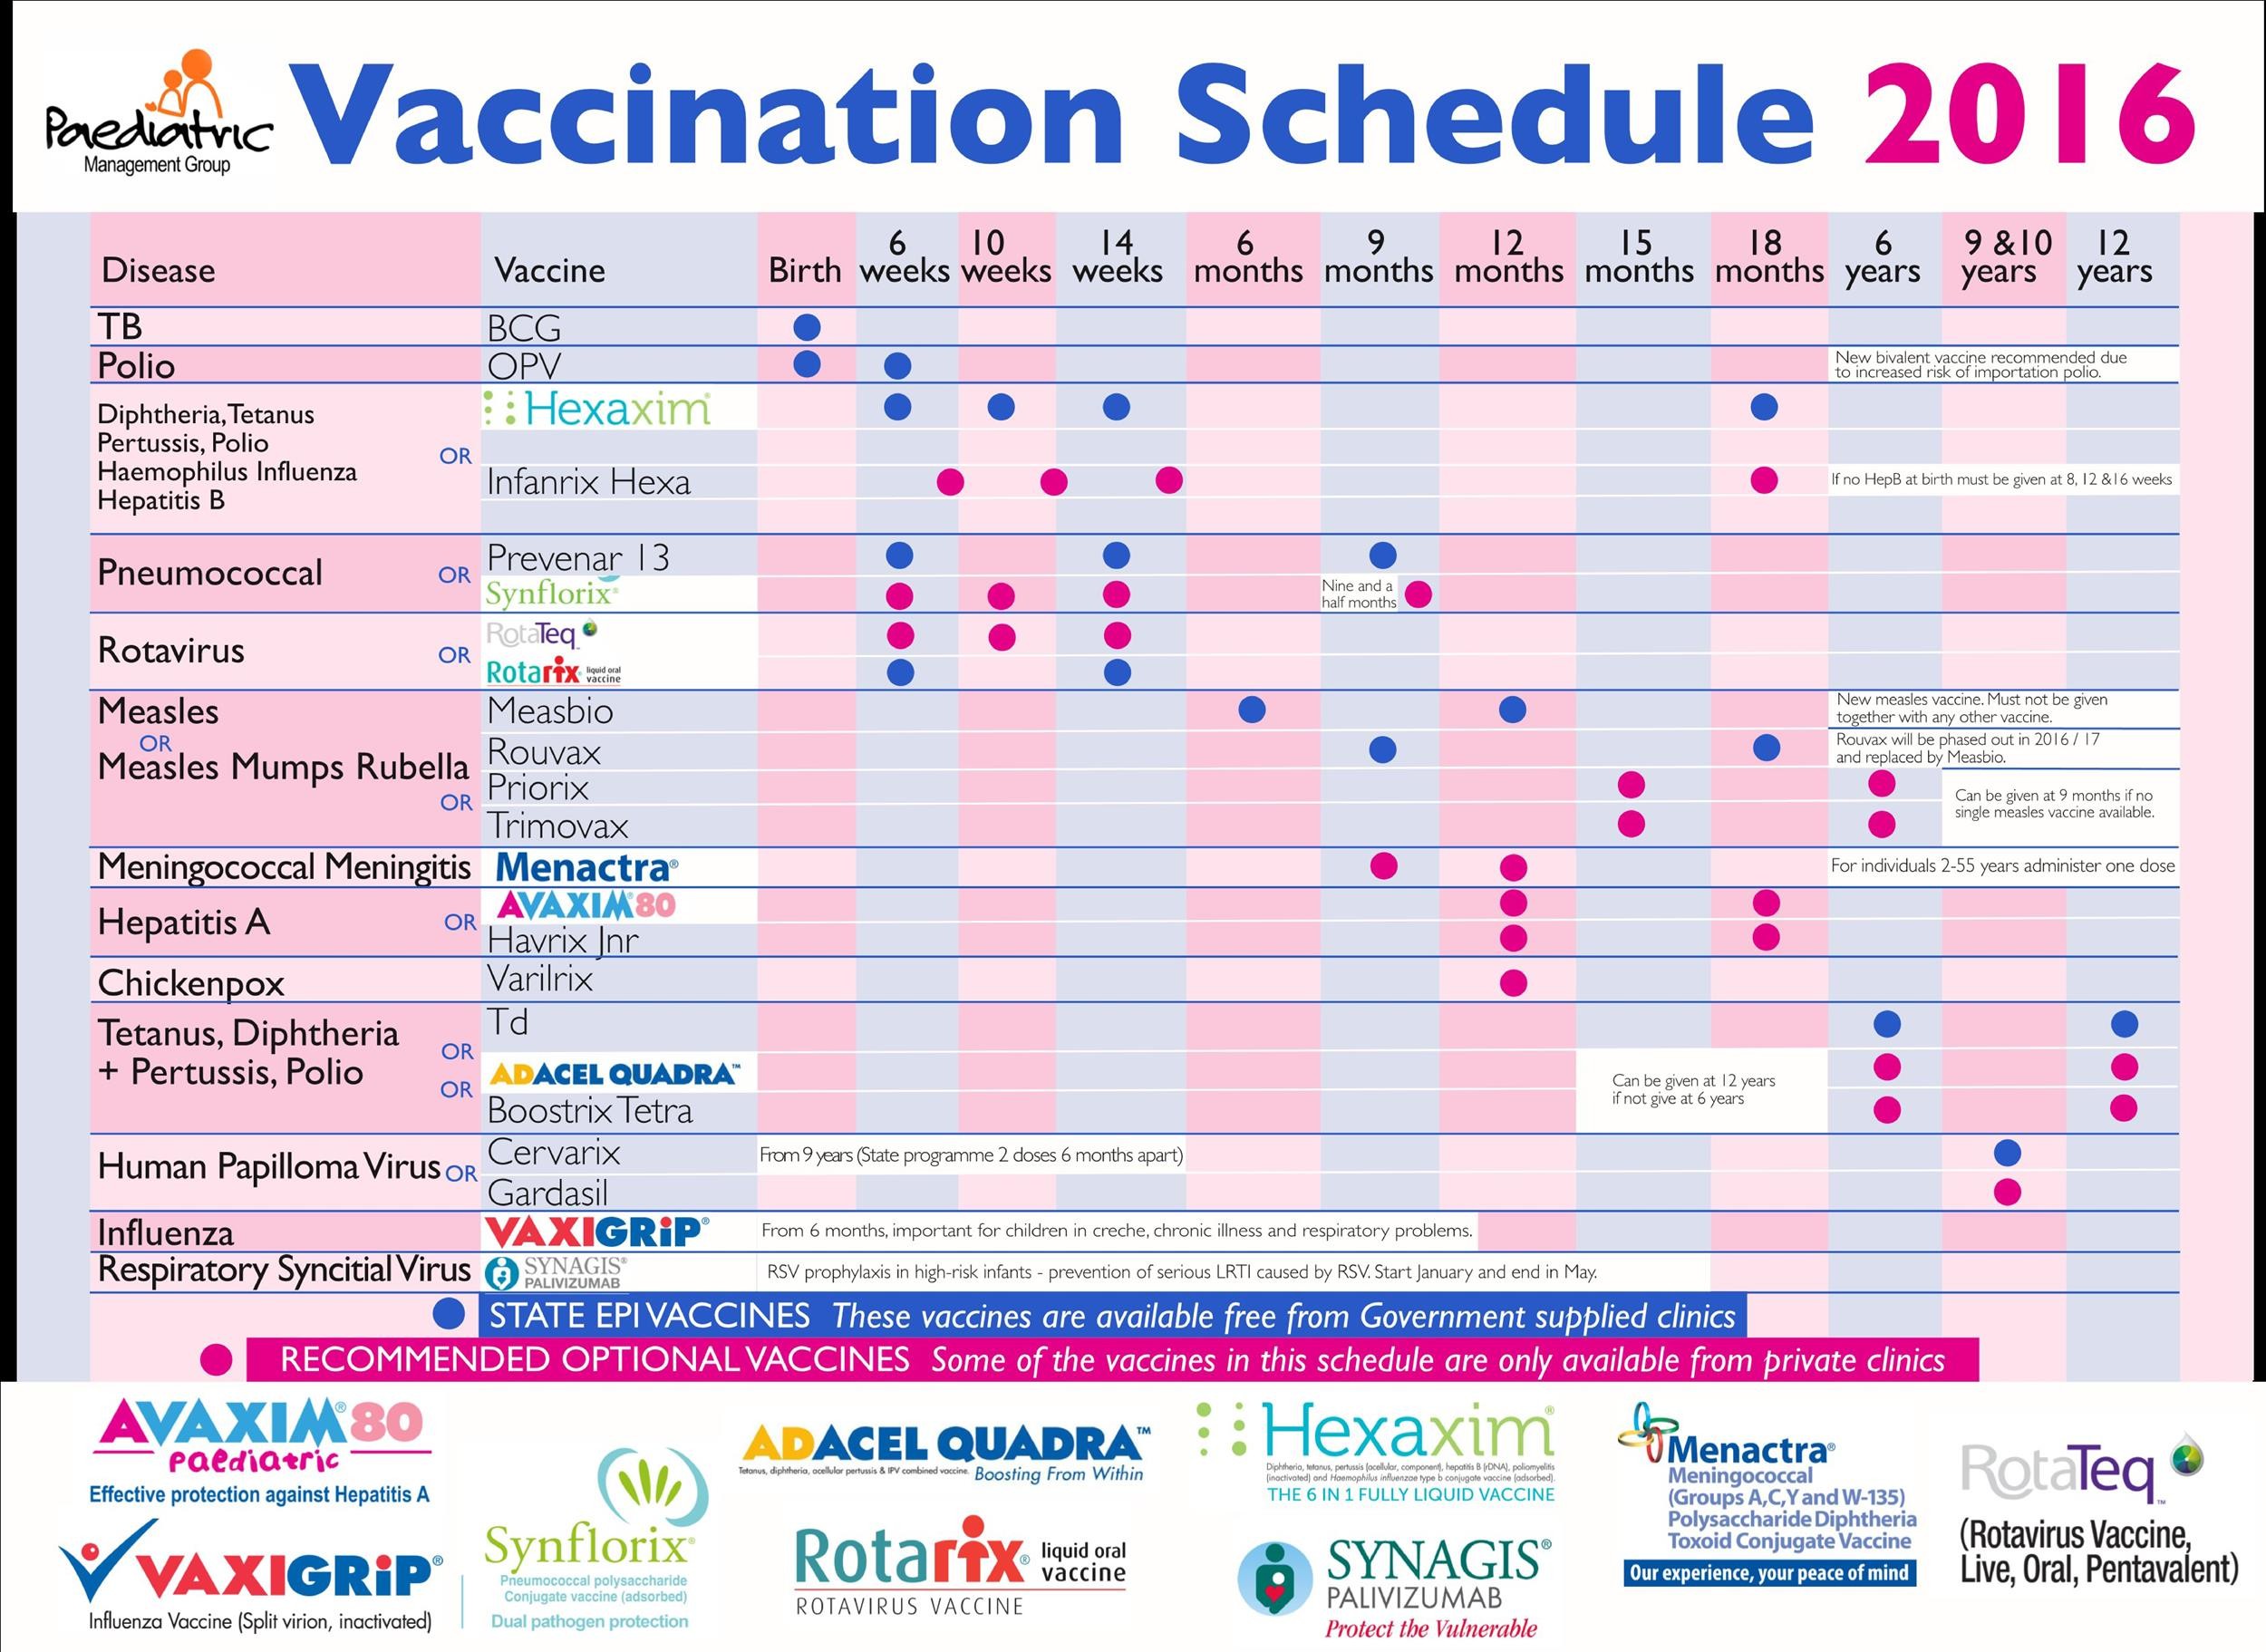 38 Useful Immunization & Vaccination Schedules [PDF] - Template Lab